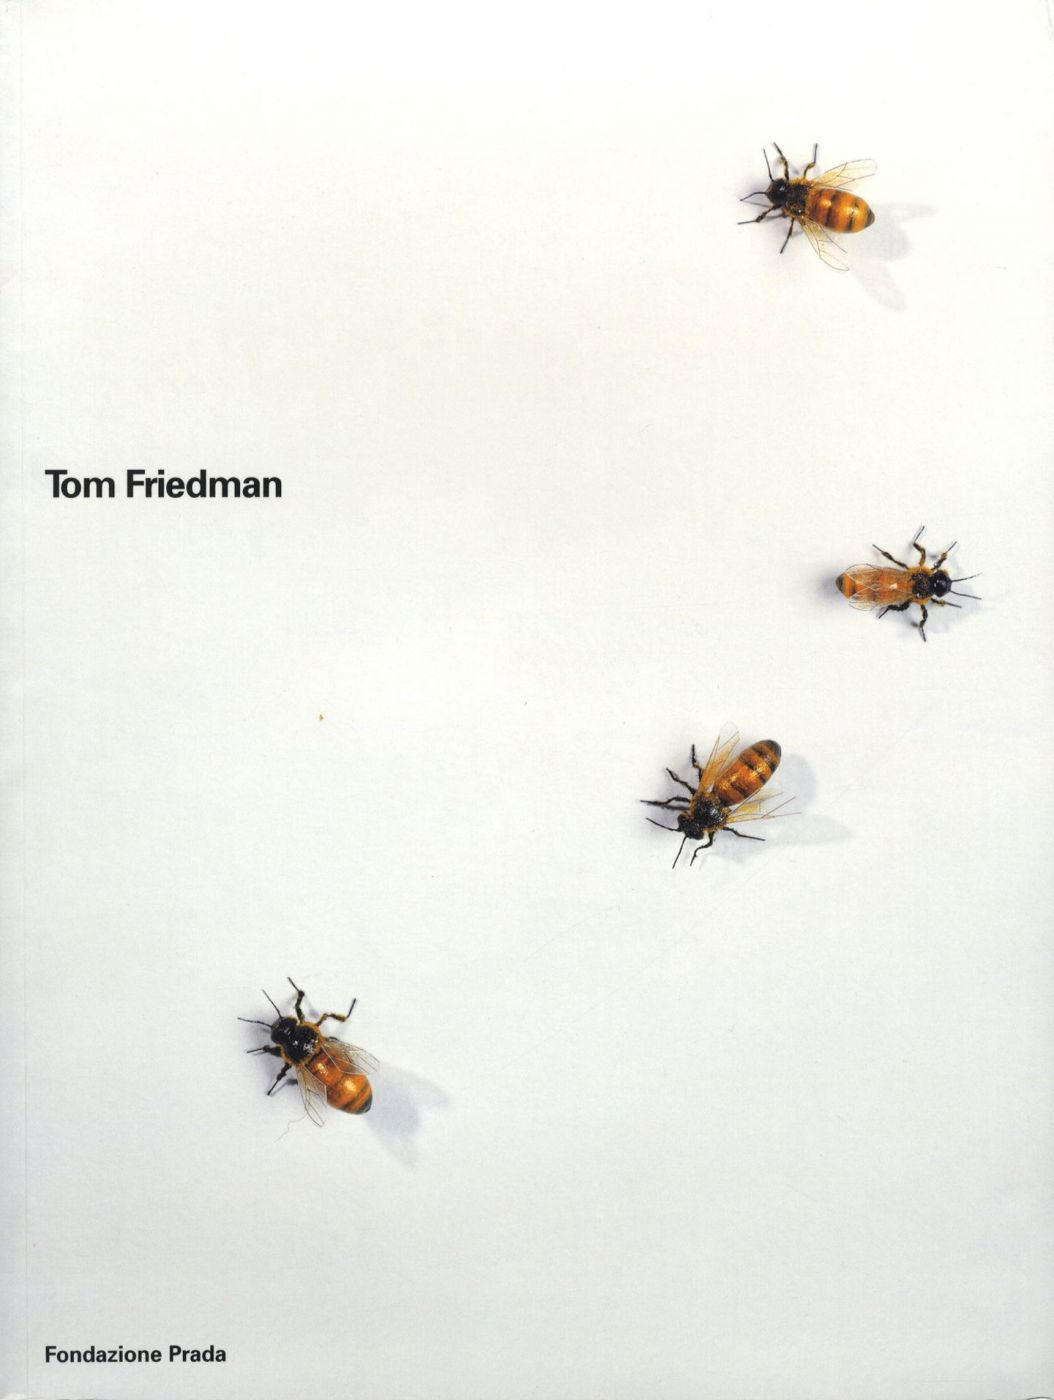 Tom Friedman (Fondazione Prada, Slipcased Two Volume Set)